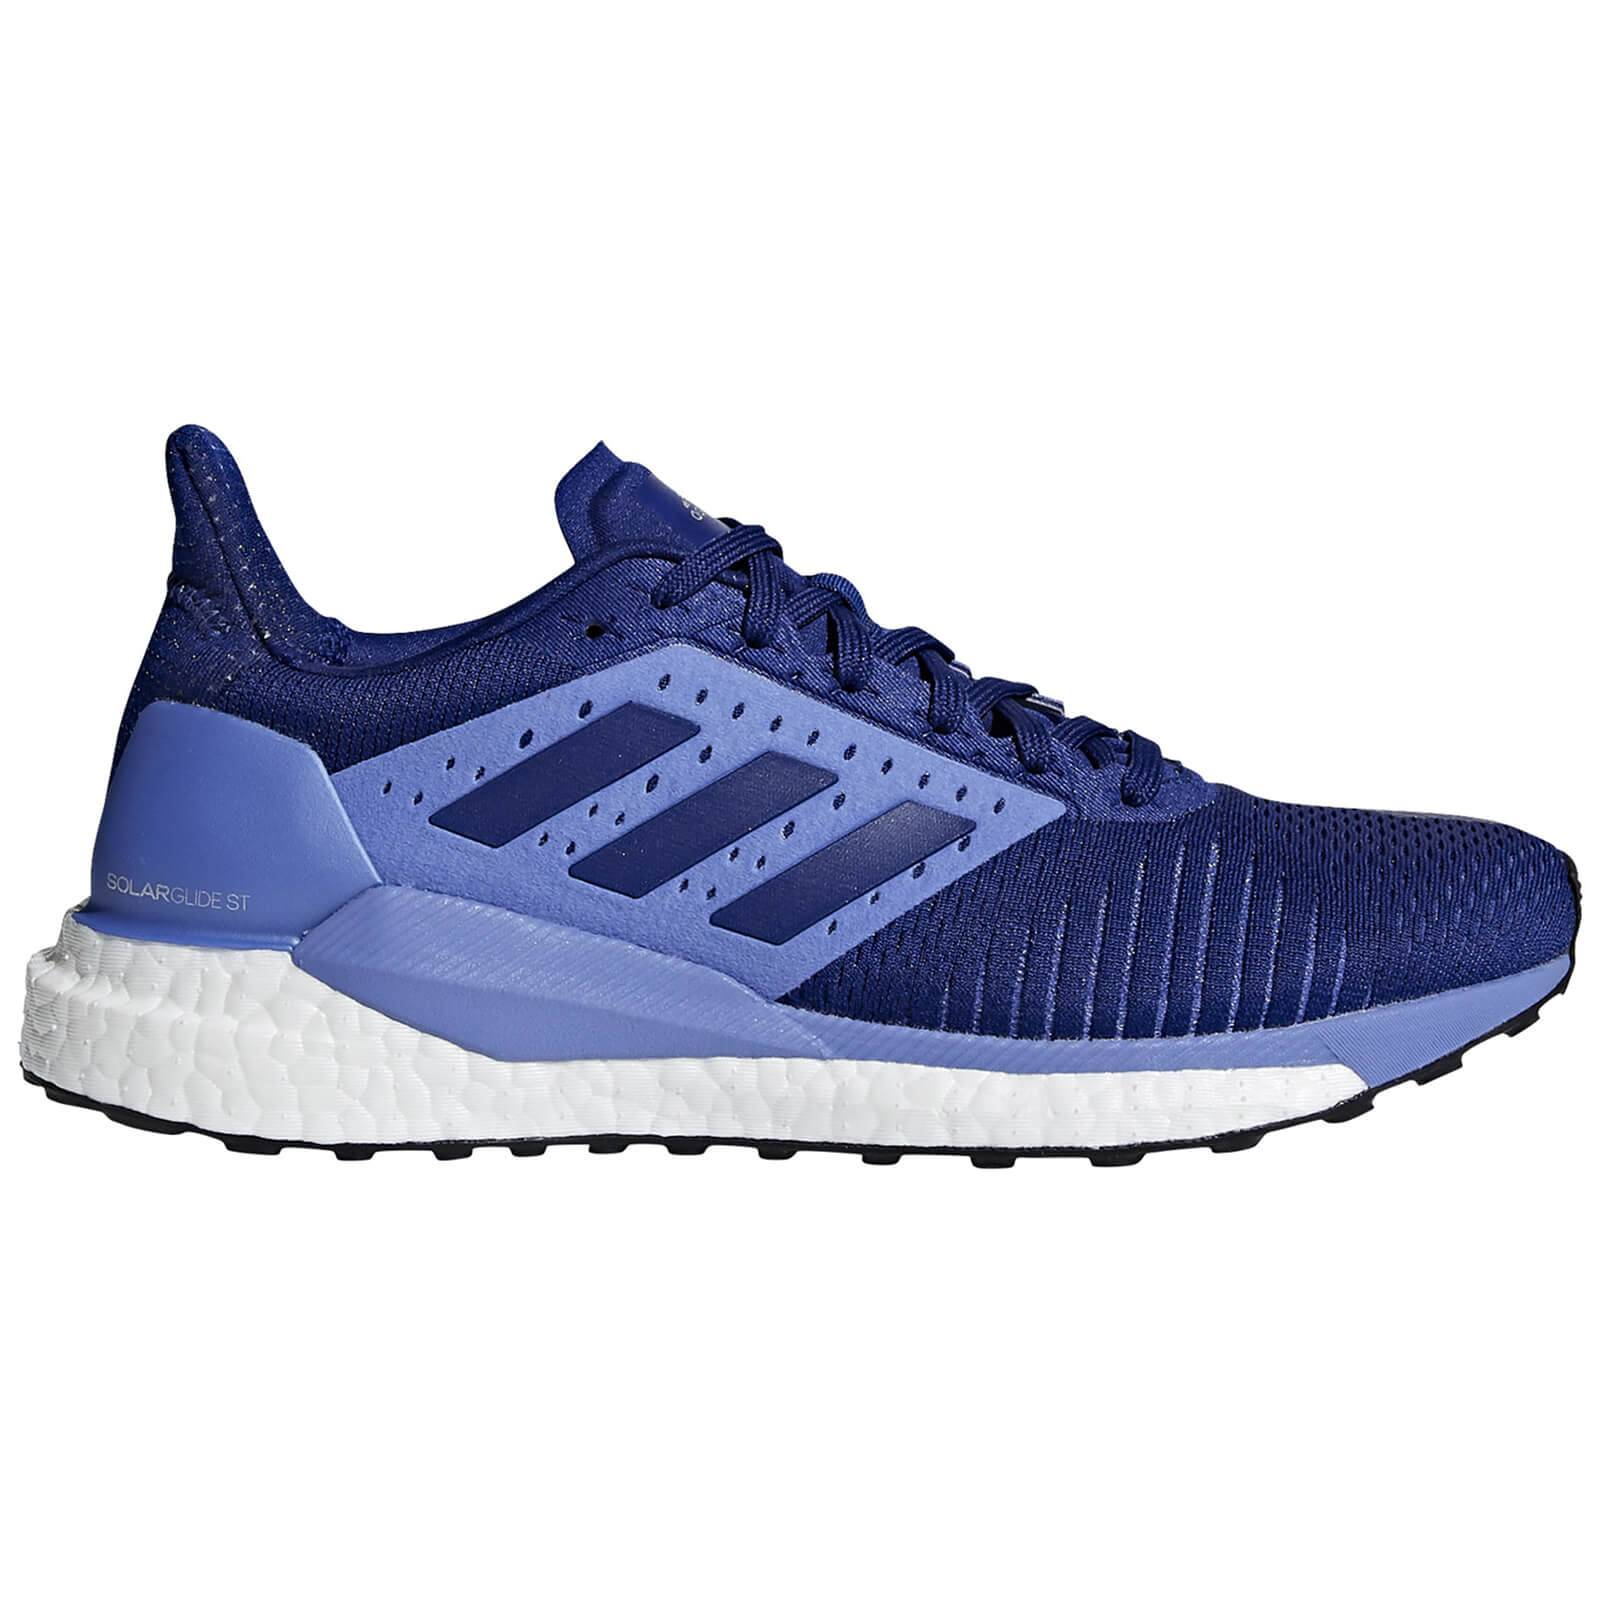 adidas Women's Solar Glide ST Running Shoes - Mystery Ink - US 6/UK 4.5 - Blue